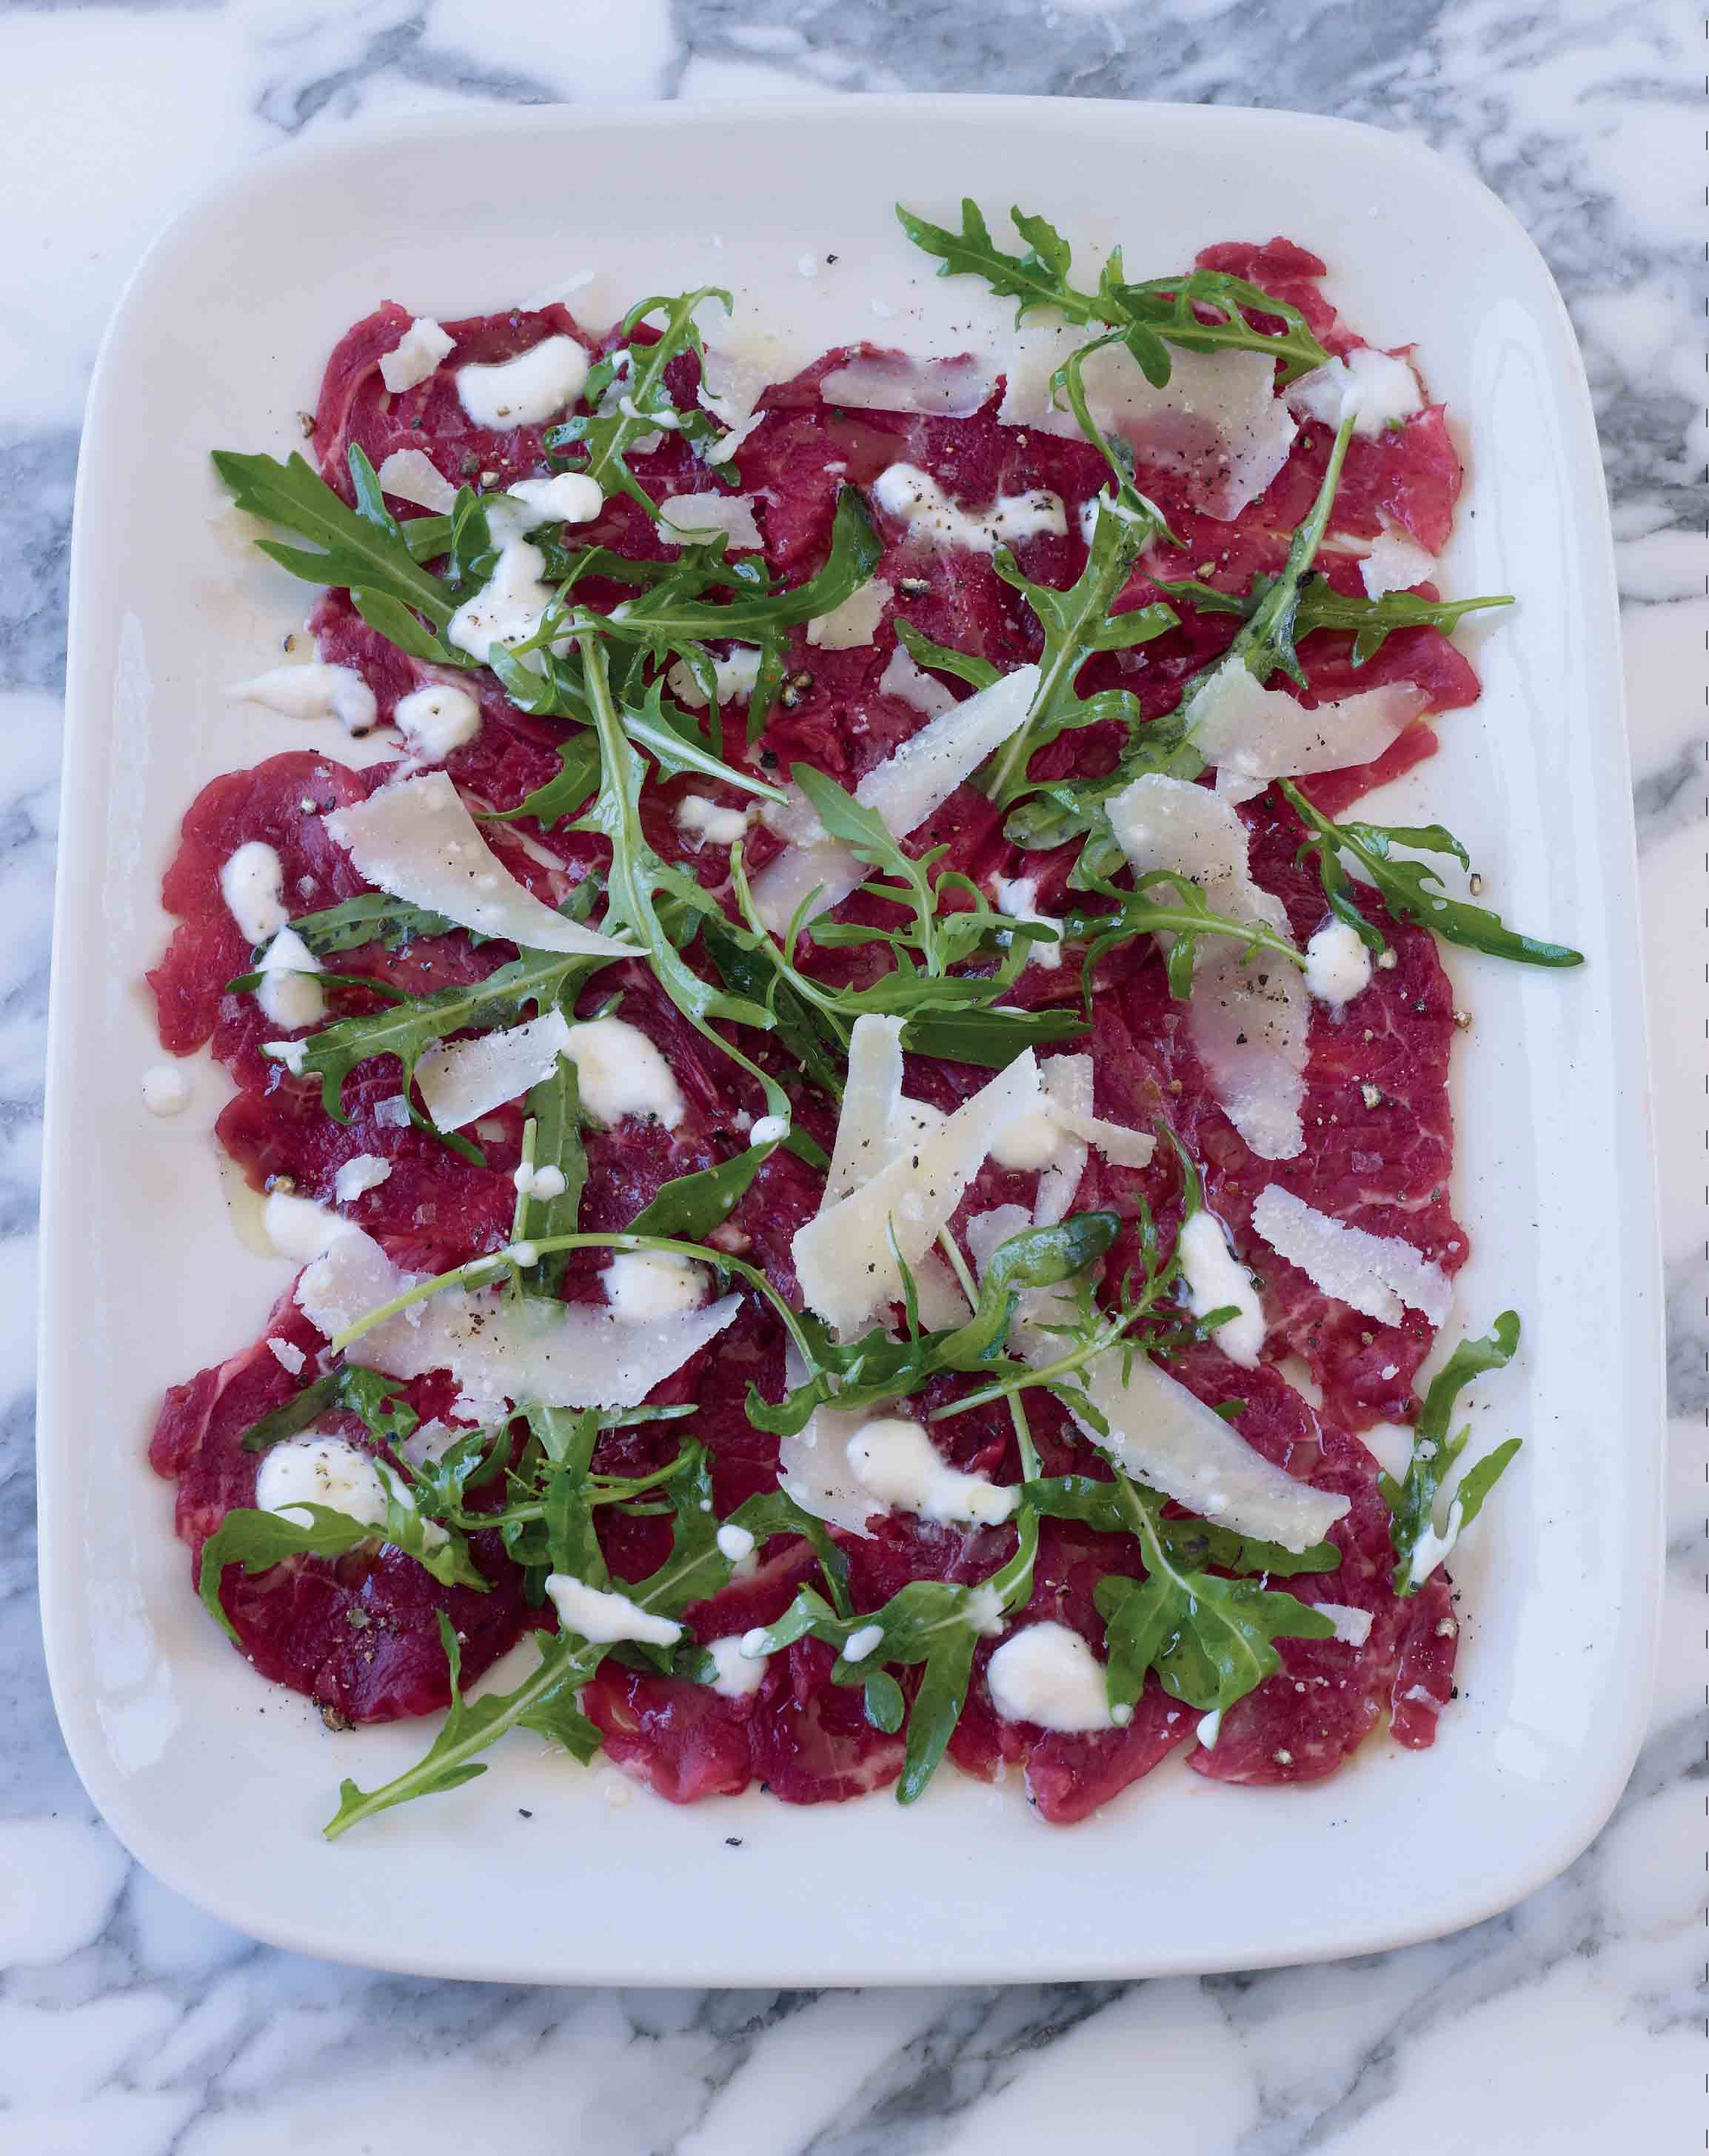 Beef carpaccio with horseradish dressing